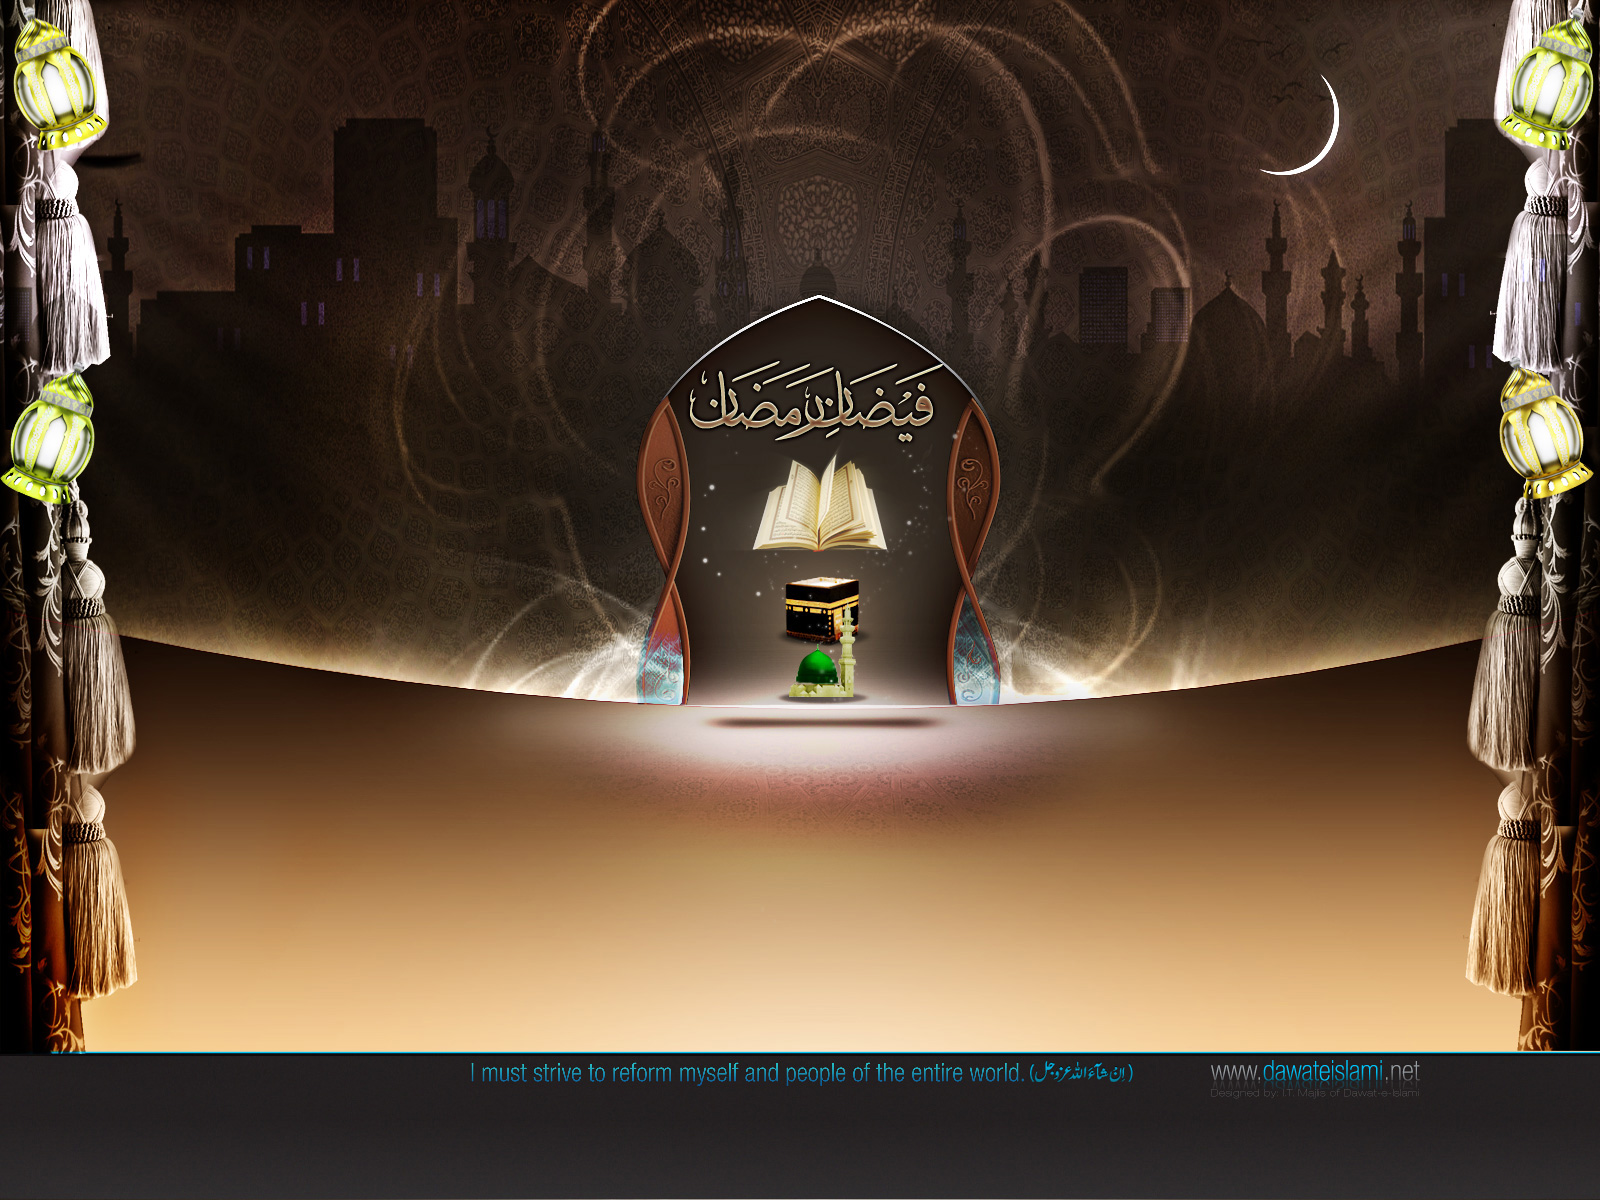 Unduh 71 Background Islami Gratis HD Paling Keren